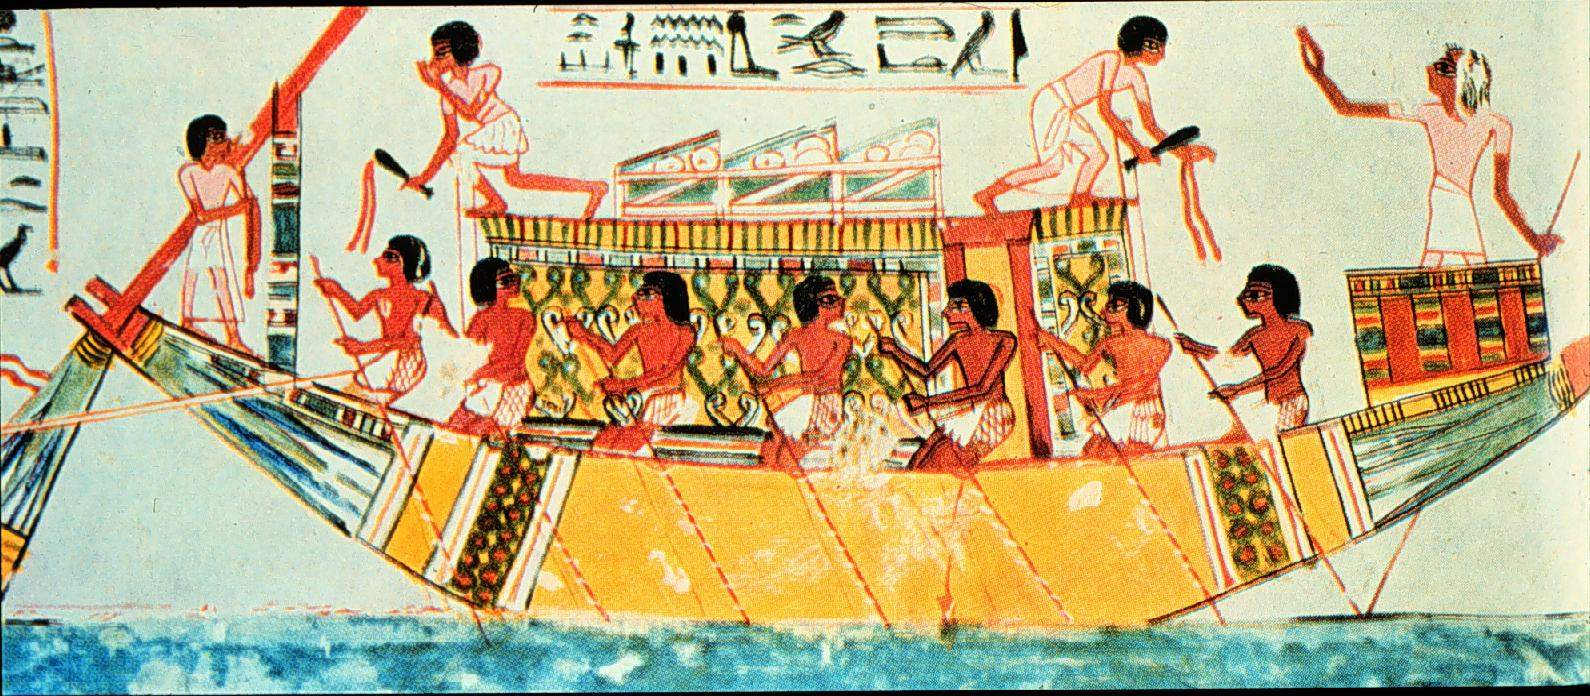 EgyptTombOarboat